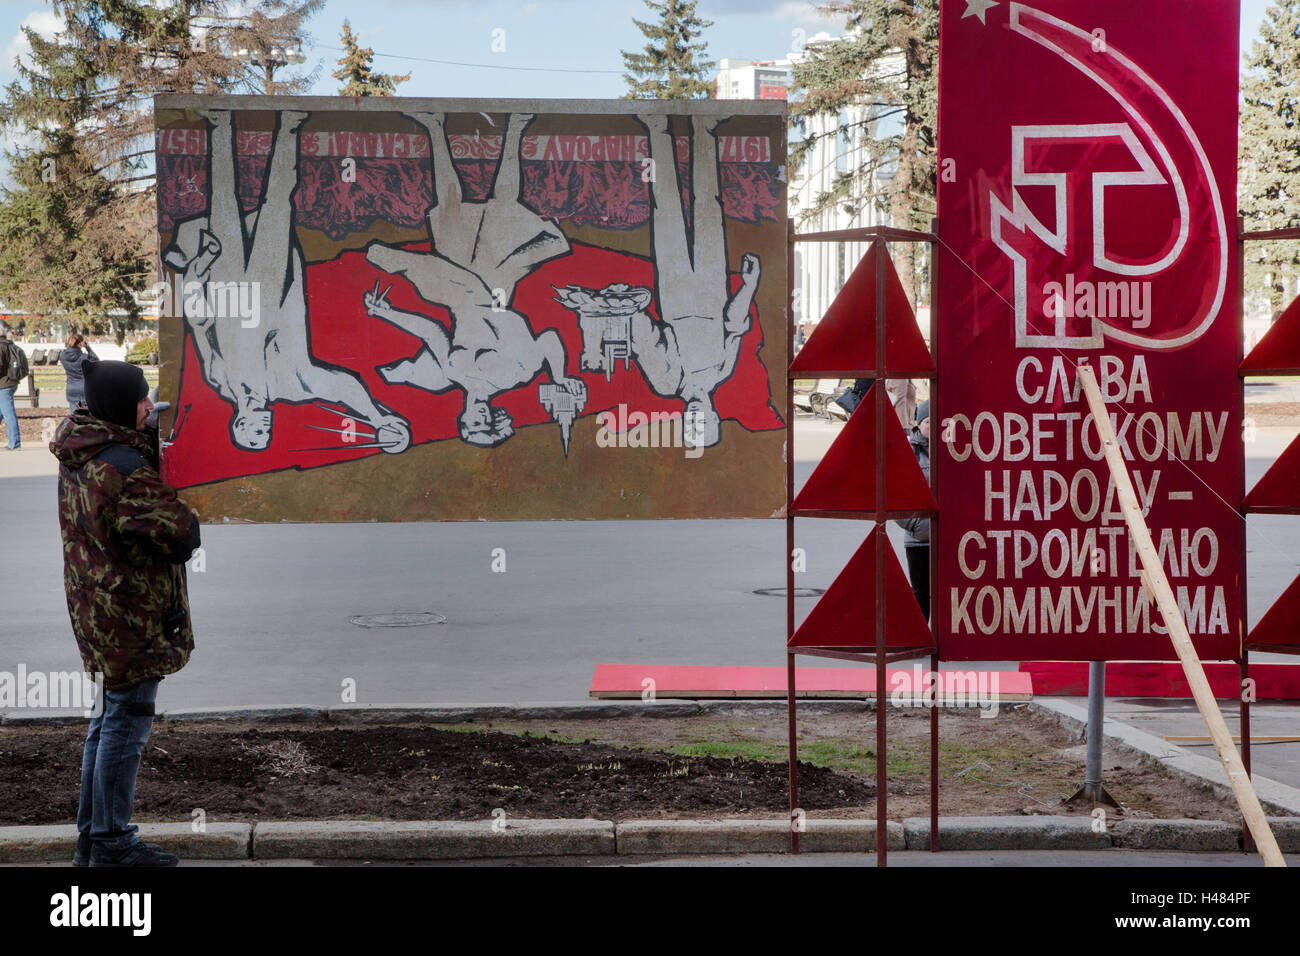 A man holds posters of the Soviet era in the VDNKh All-Russia exhibition in Moscow, Russia - Stock Image